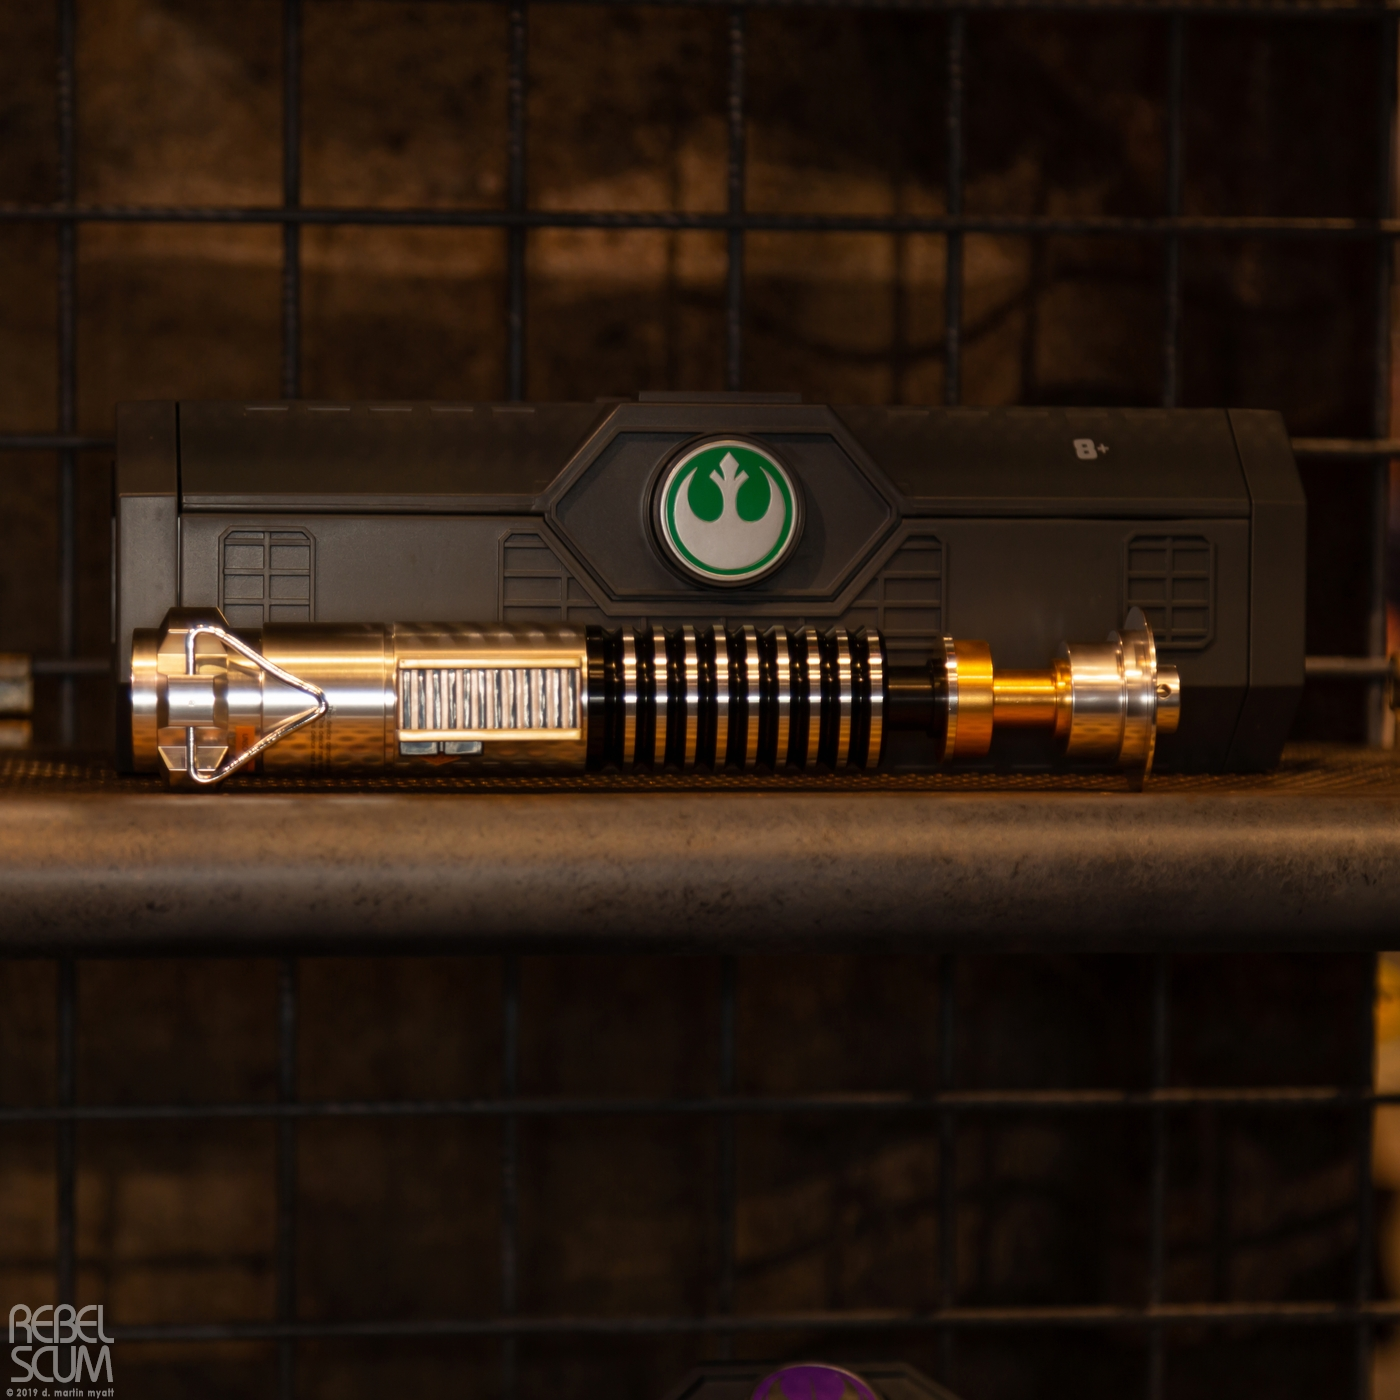 Galaxys-Edge-Star-Wars-Celebration-Chicago-Lightsabers-13